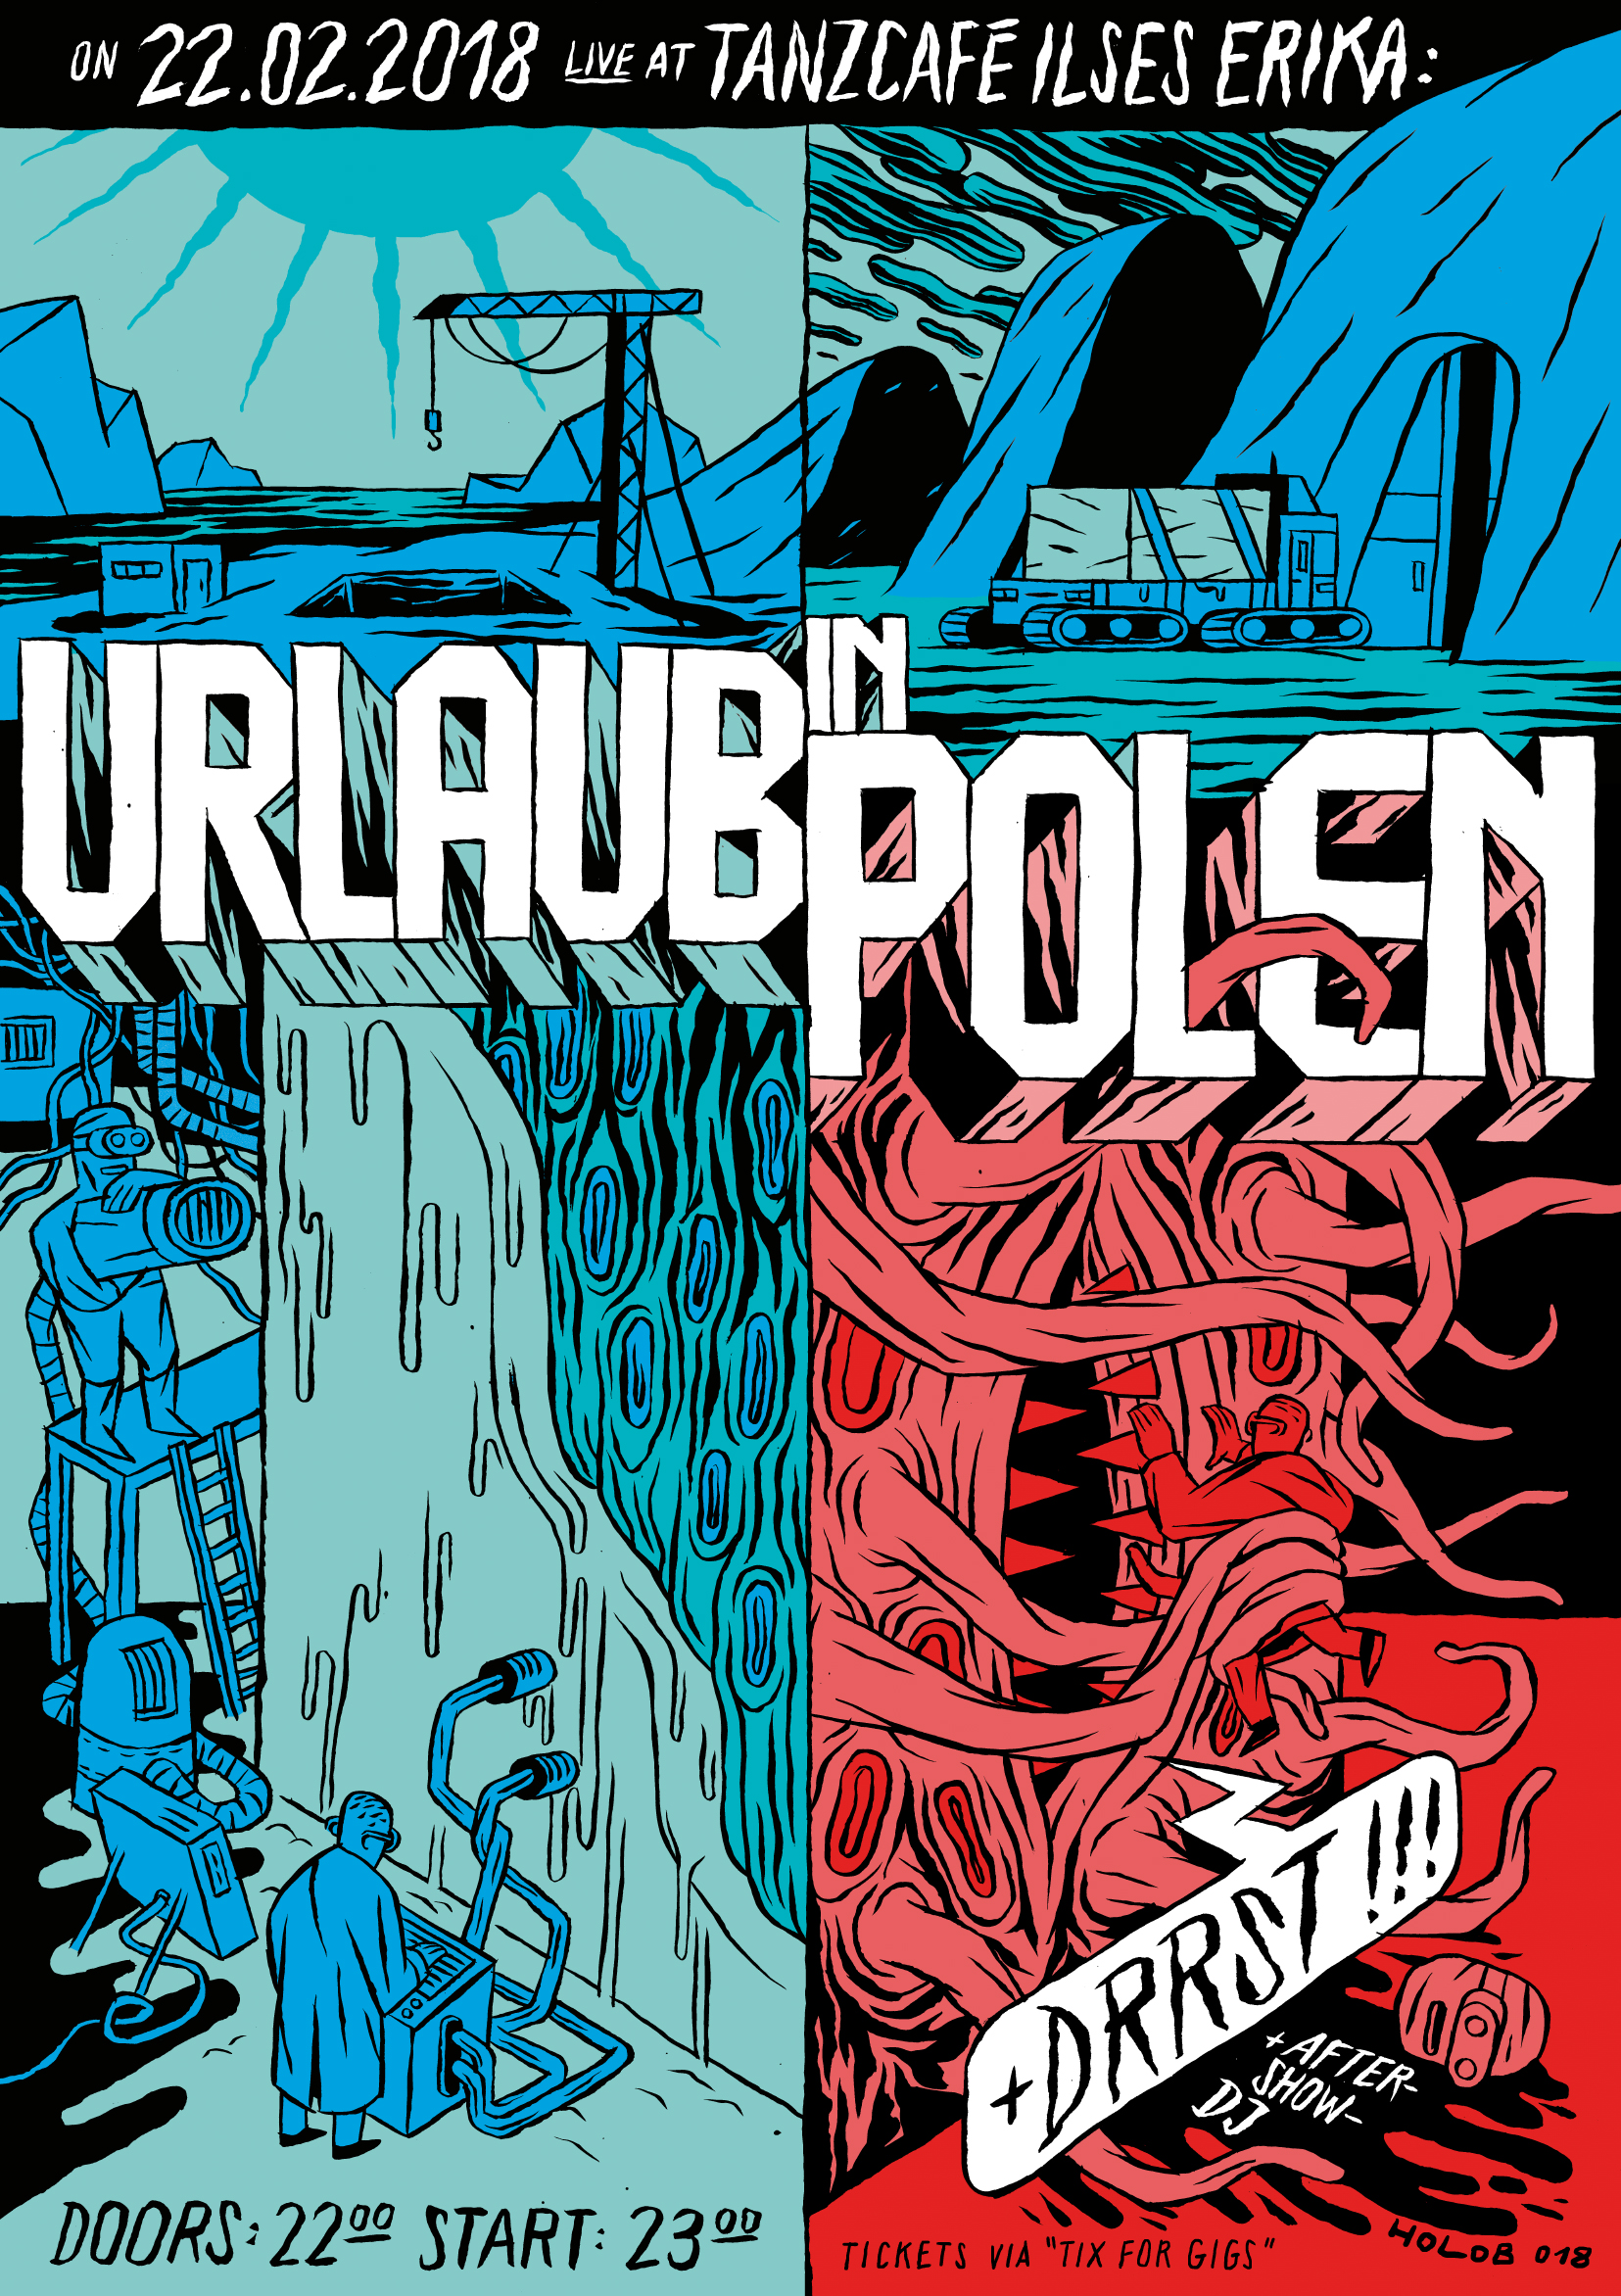 Preview: Urlaub in Polen live at Ilses Erika!